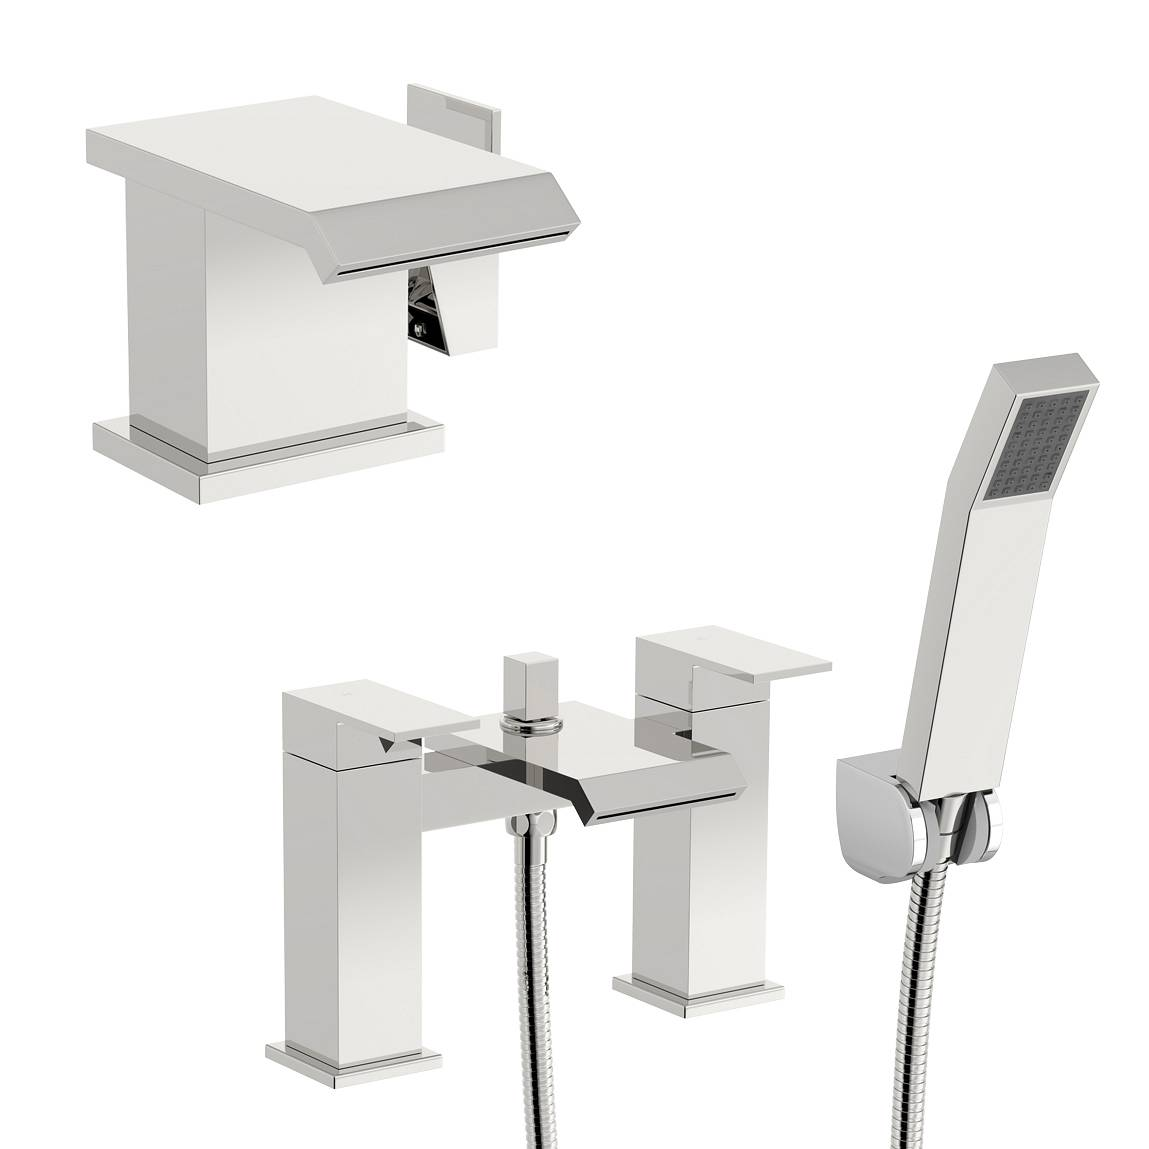 Image of Aurora Basin and Bath Shower Mixer Pack